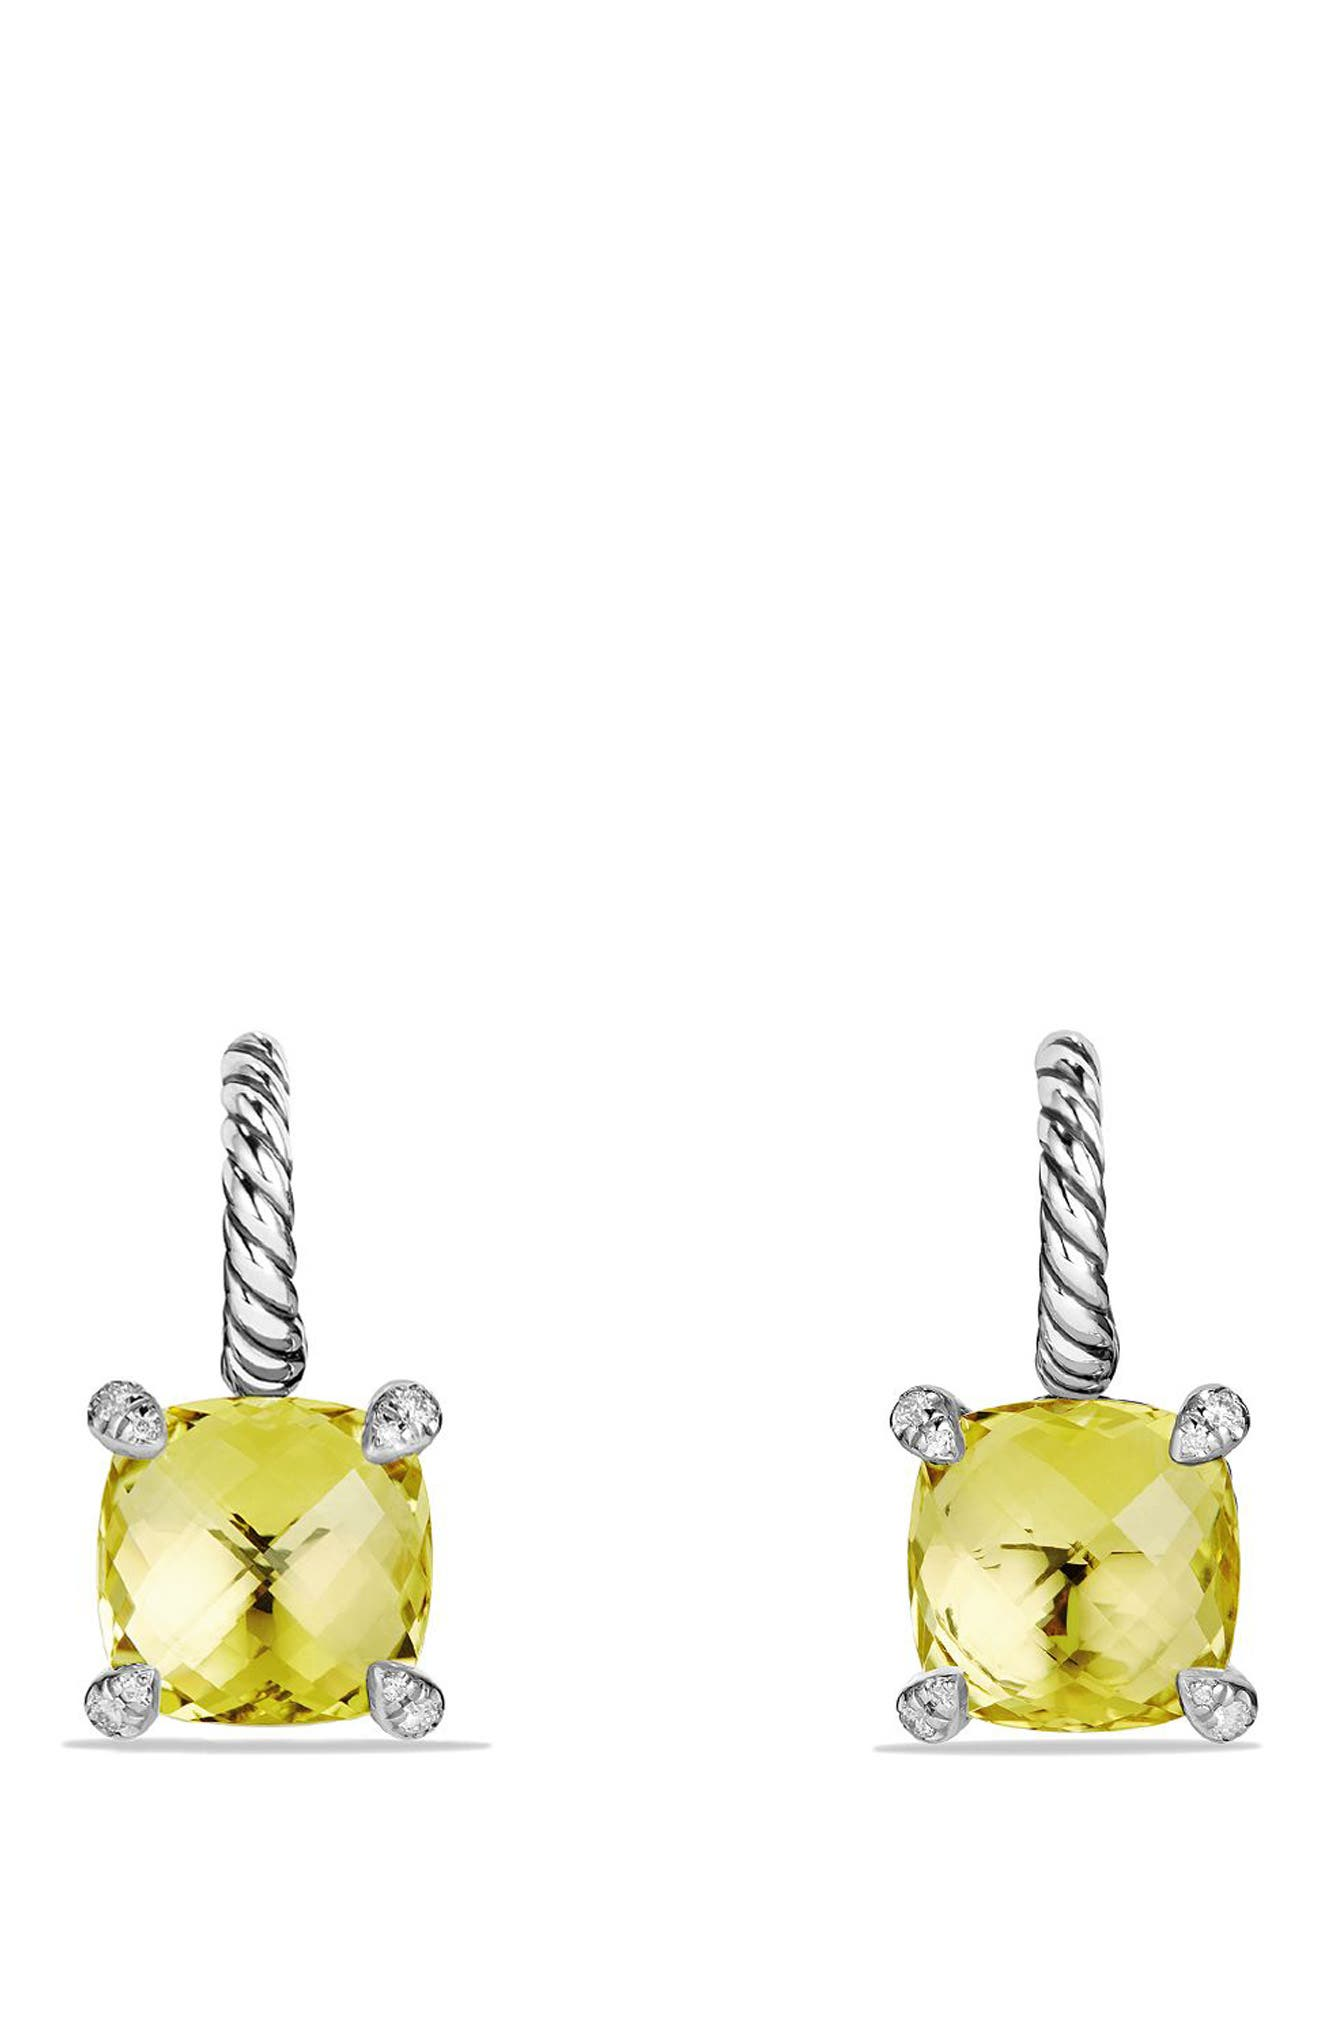 'Châtelaine' Drop Earrings with Semiprecious Stones and Diamonds,                             Alternate thumbnail 3, color,                             001